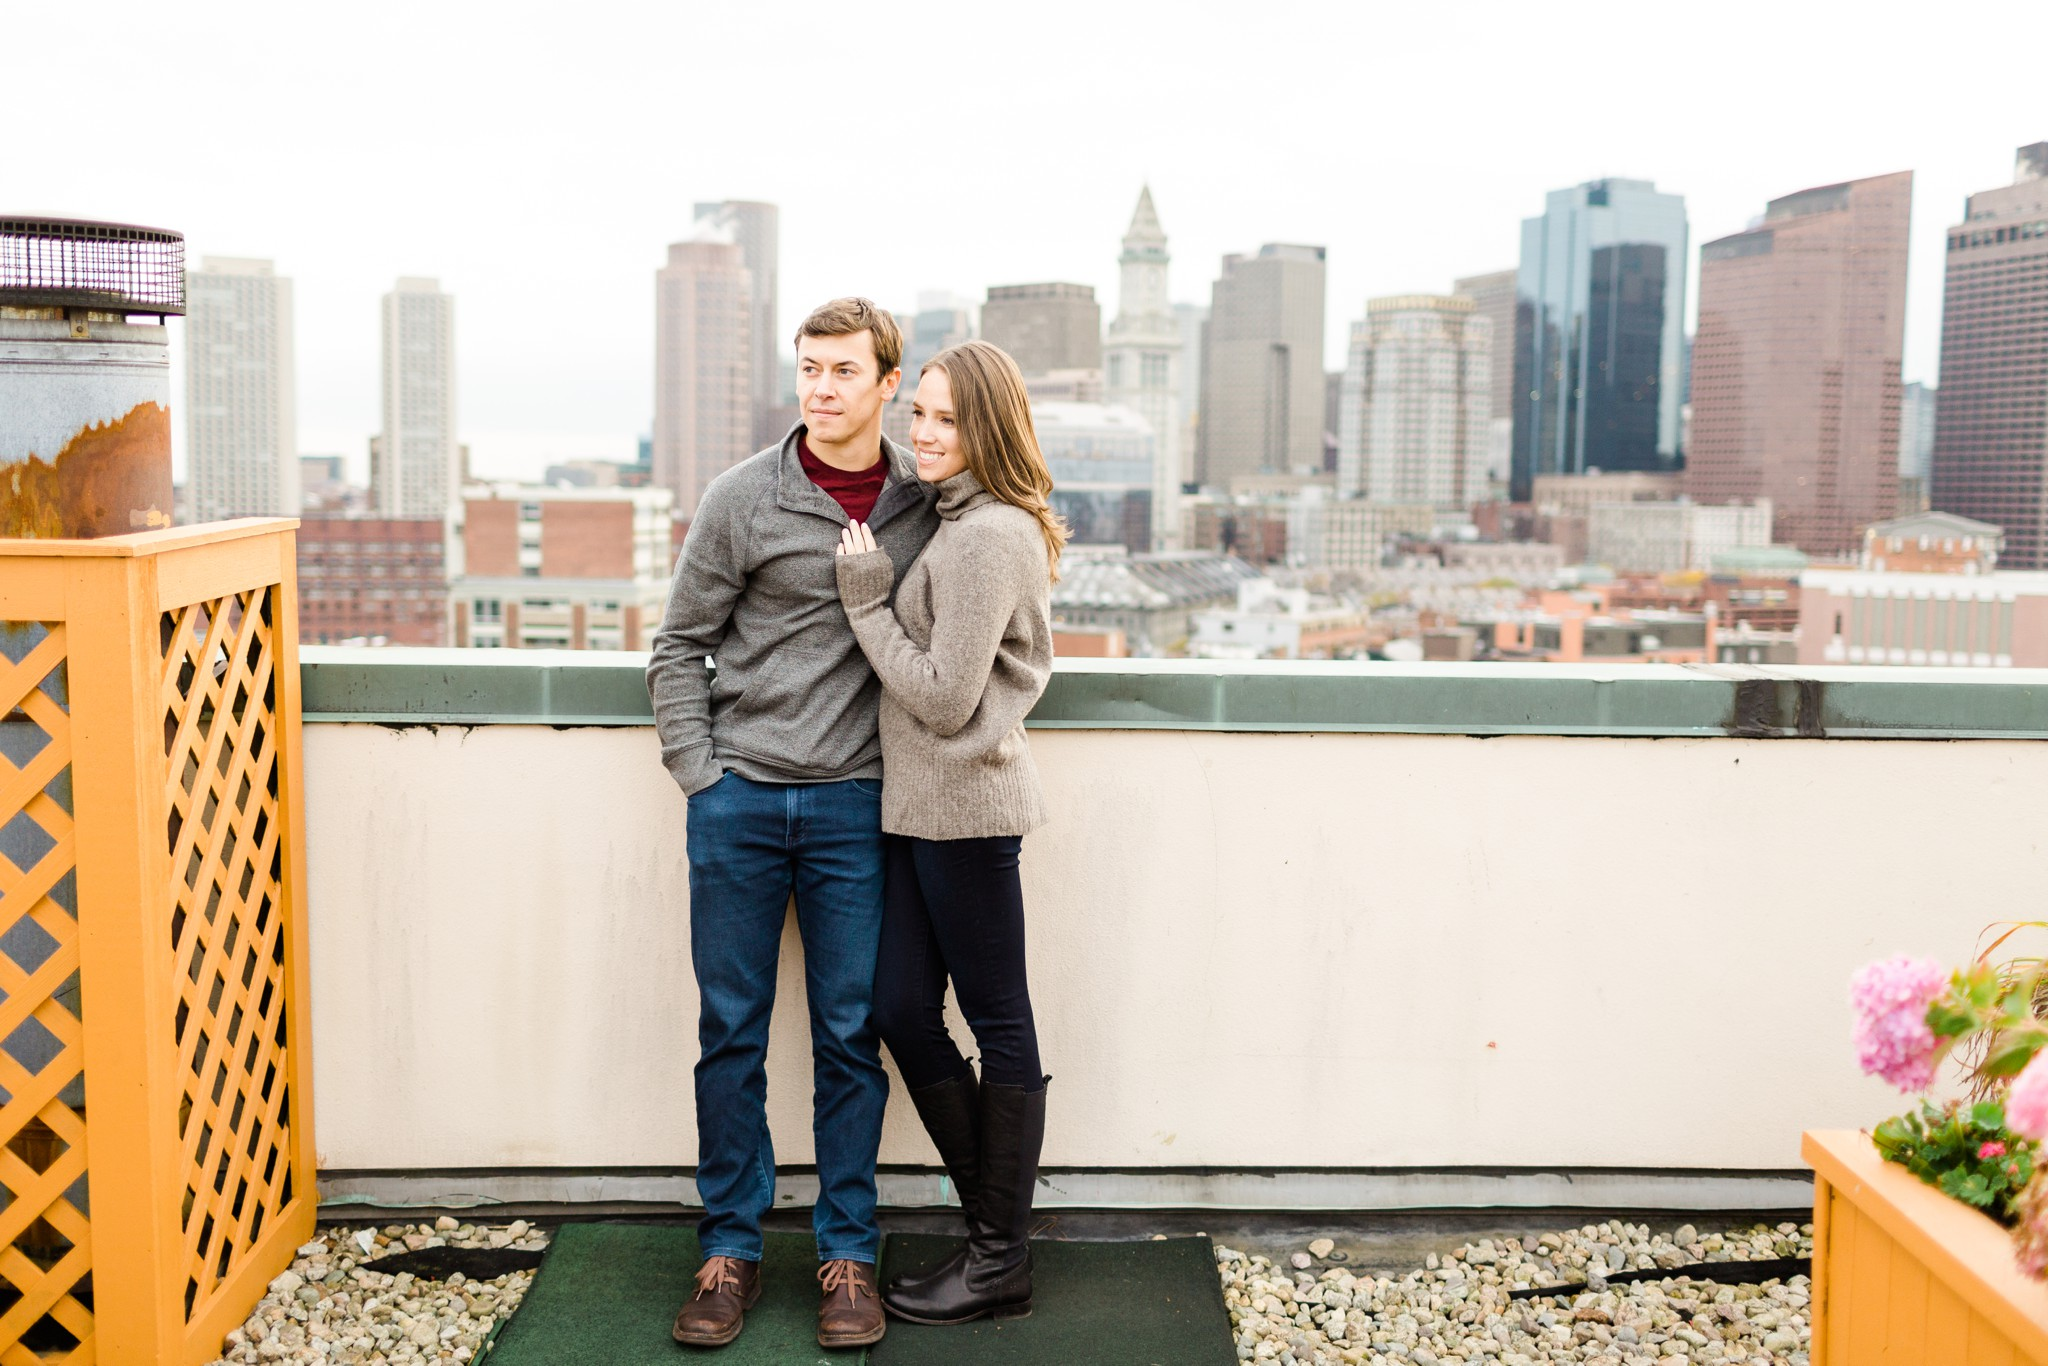 deborah_zoe_photography_engagement_session_0124.JPG